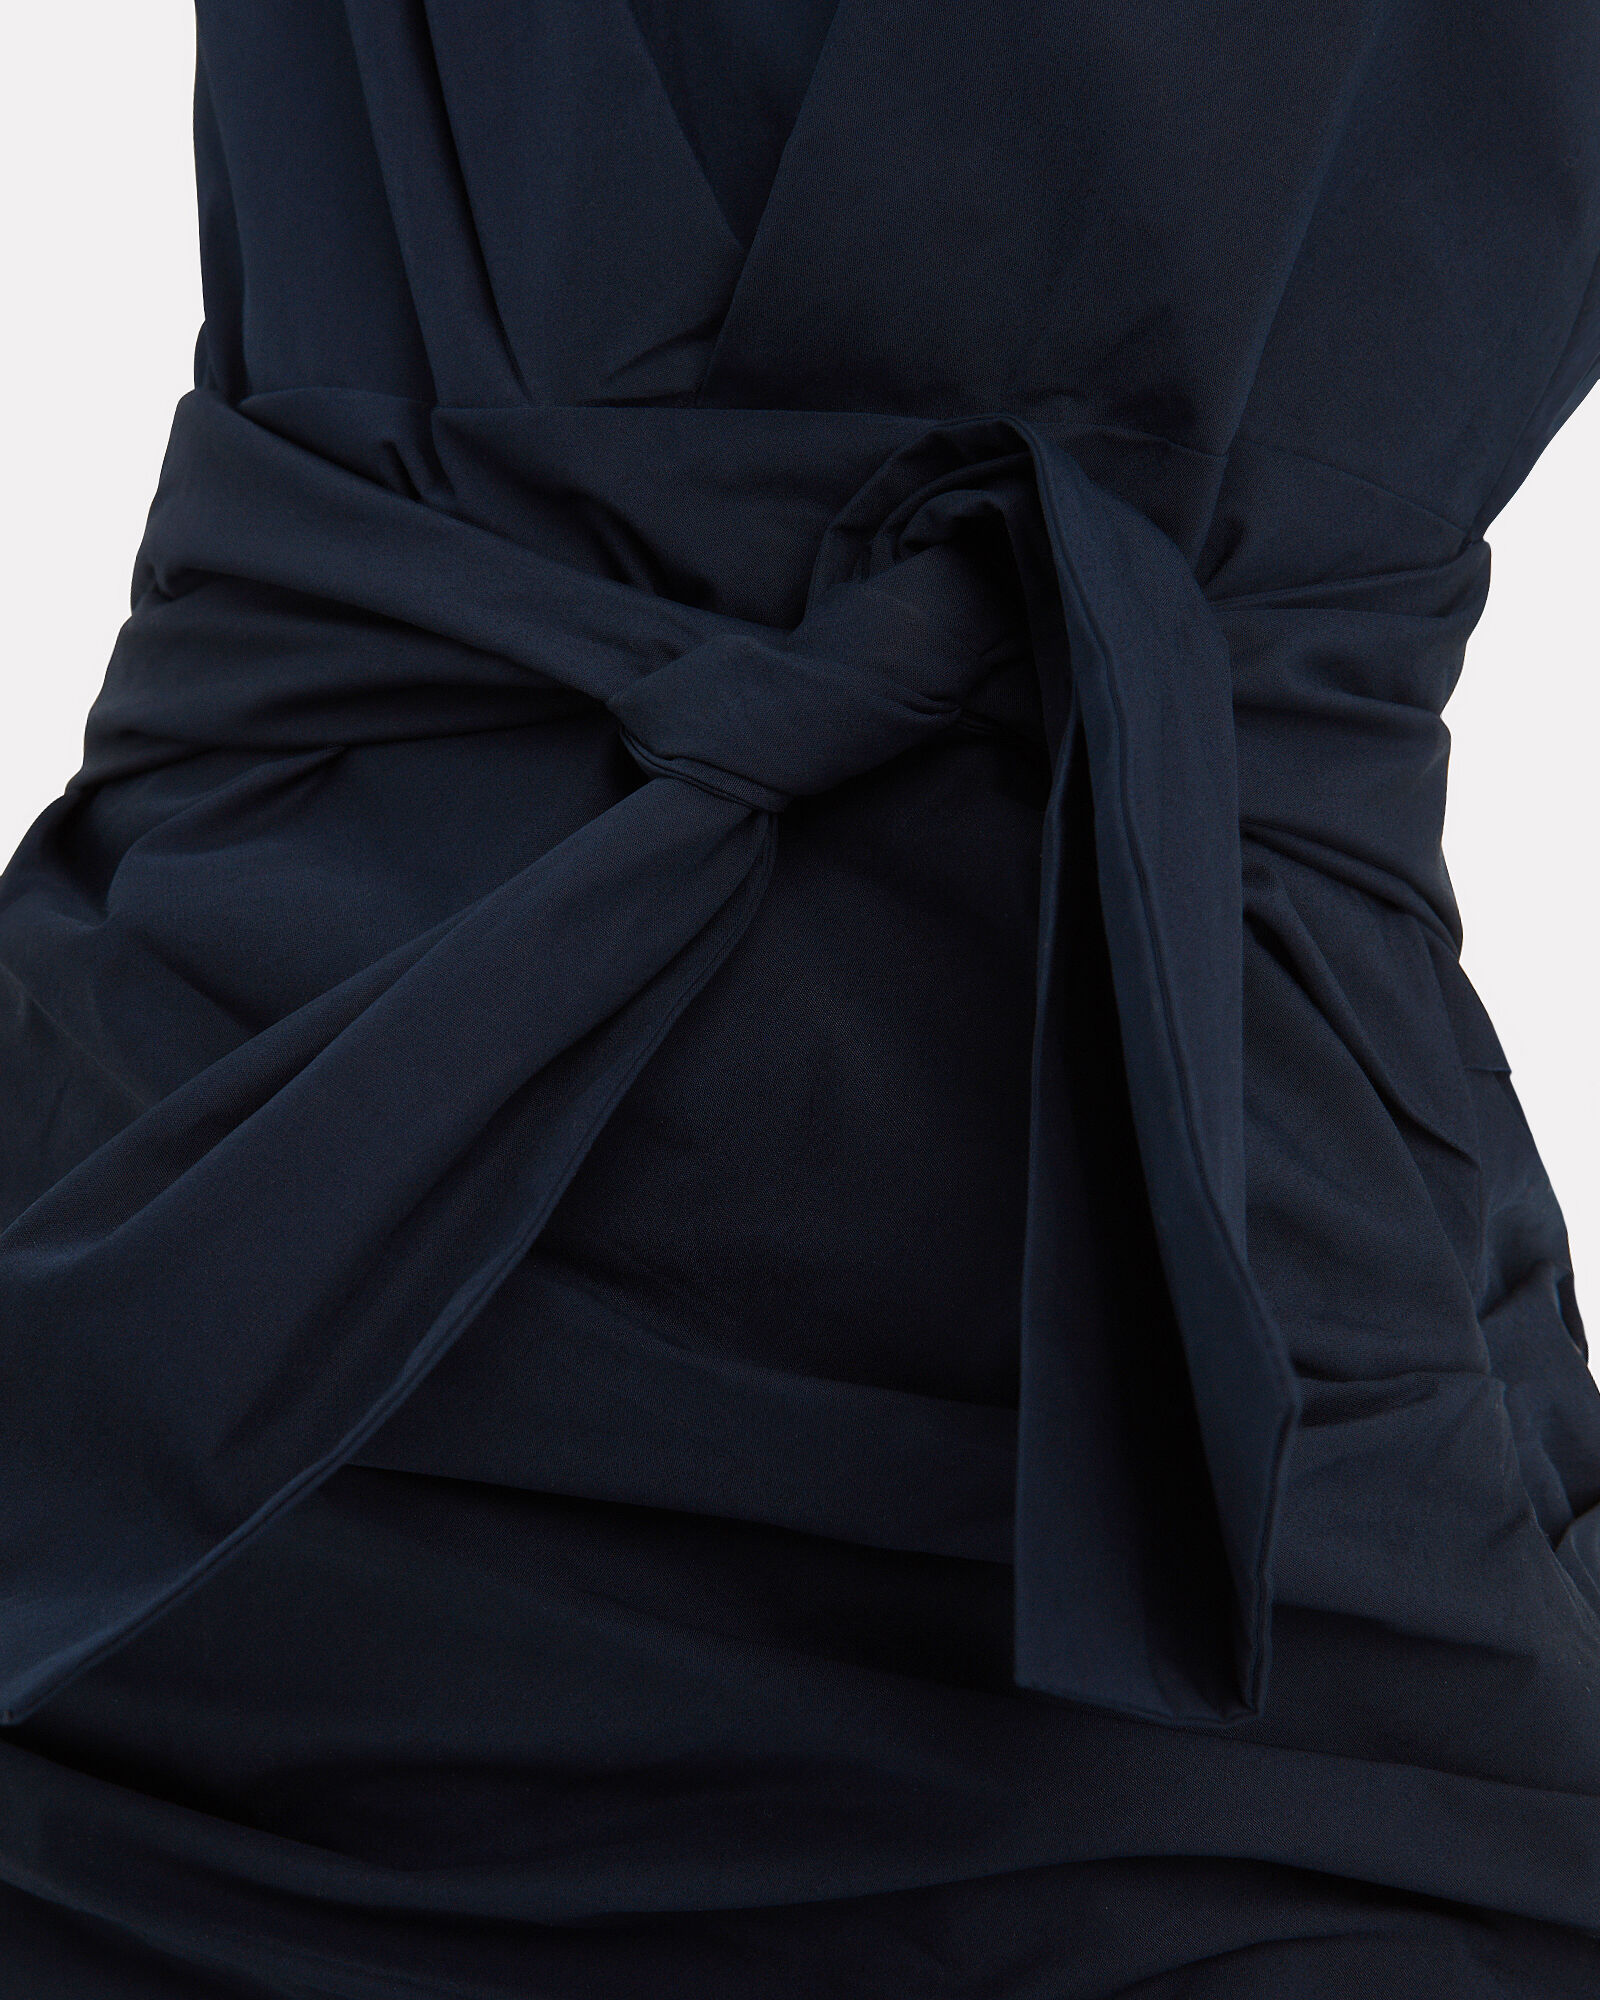 One Shoulder Gathered Poplin Dress, NAVY, hi-res